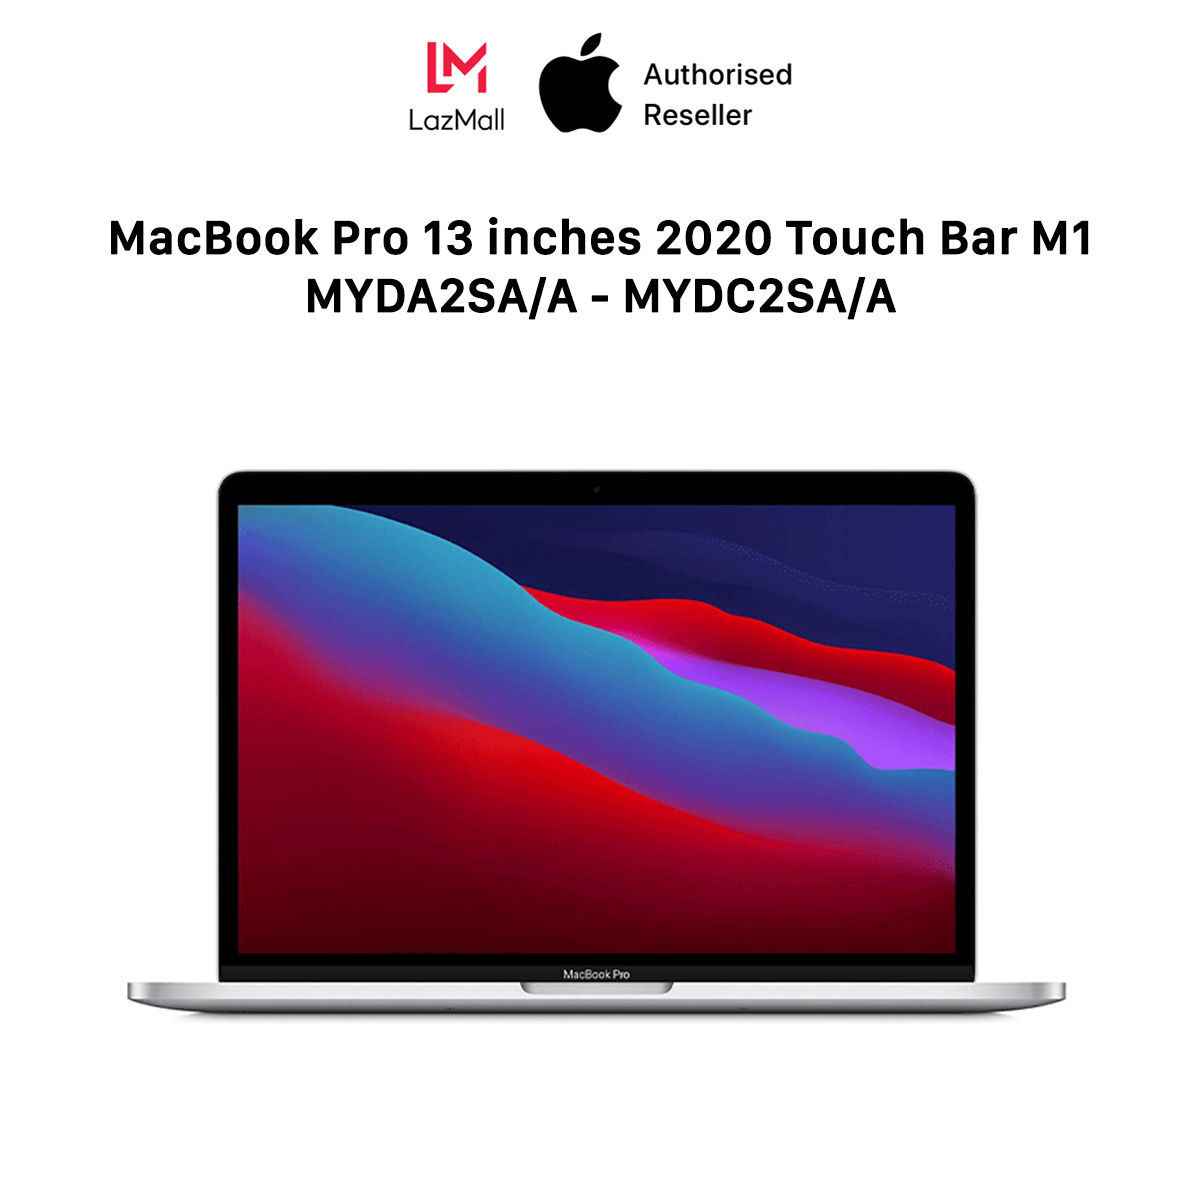 [DELIVERY FROM 01.02] MacBook Pro 13 inches 2020 Touch Bar M1 – 100% New (Not Activated, Not Used) – 12 Months Warranty At Apple Service – 0% Installment Payment via Credit card